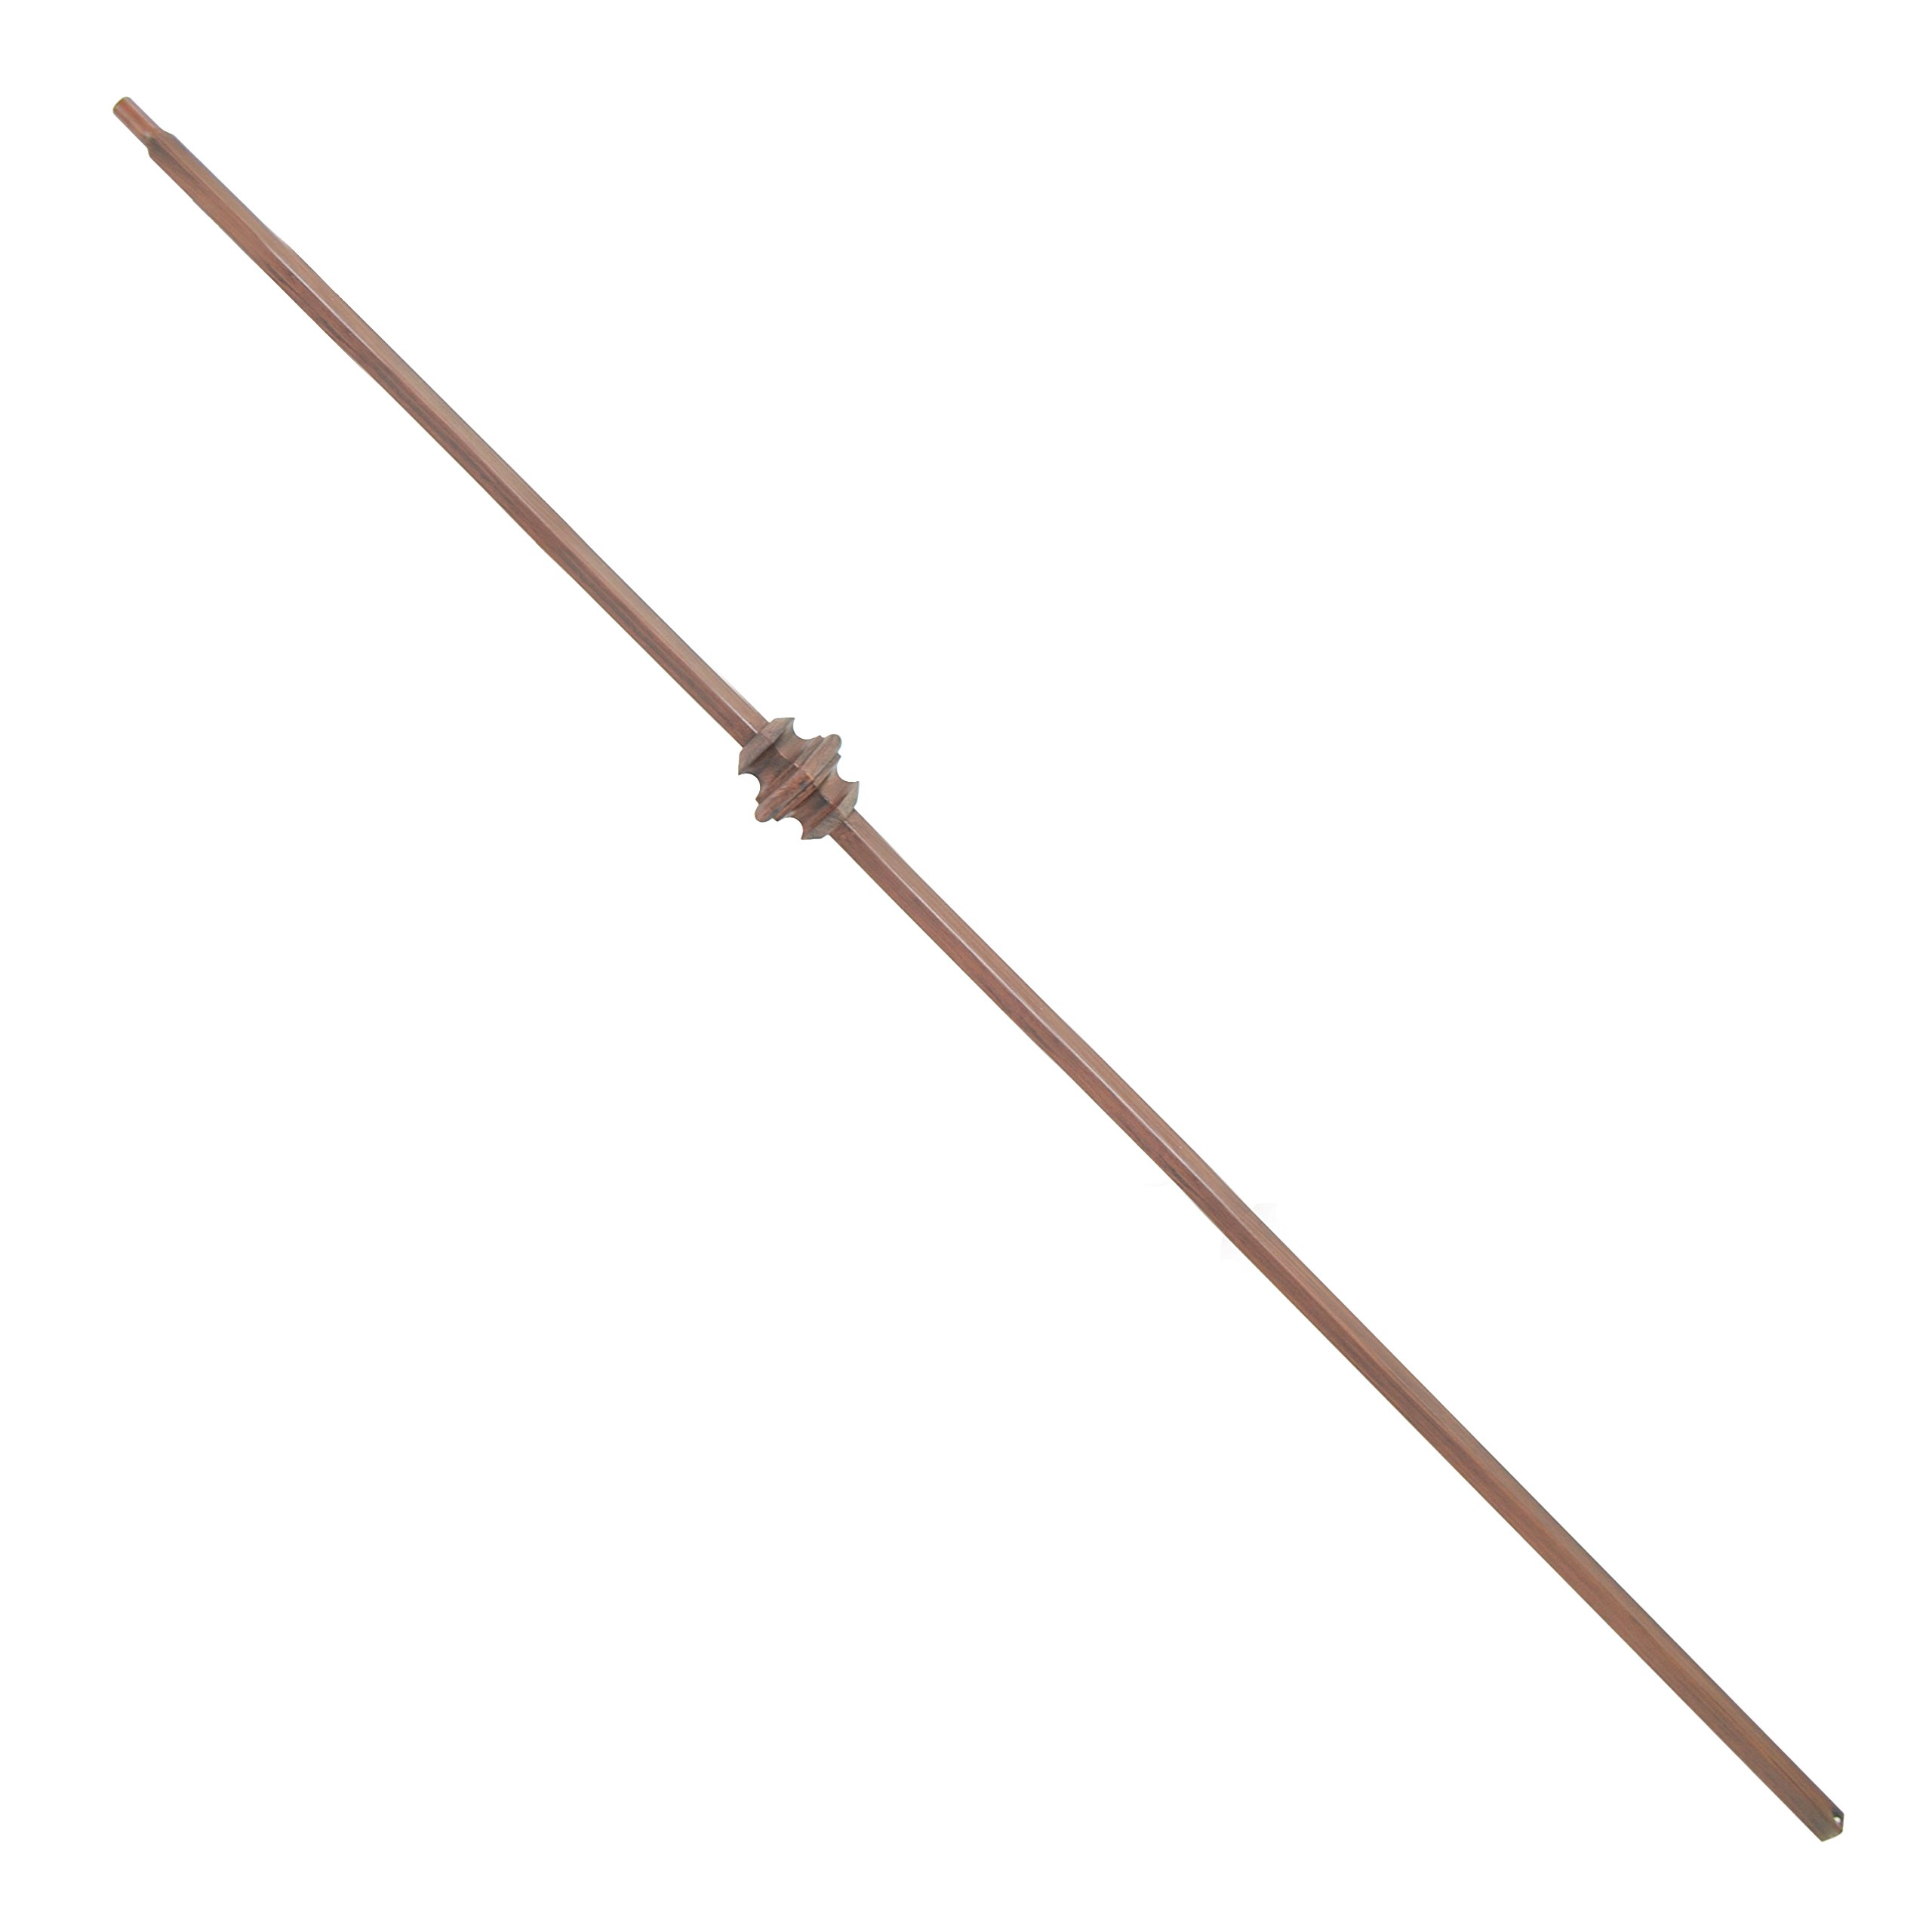 ALEKO BSTR010B Baluster Stair Spindle Supply Single Knuckle Design 1/2 Inch Oil Rubbed Cast Iron Bronze Finished Lot of 10 by ALEKO